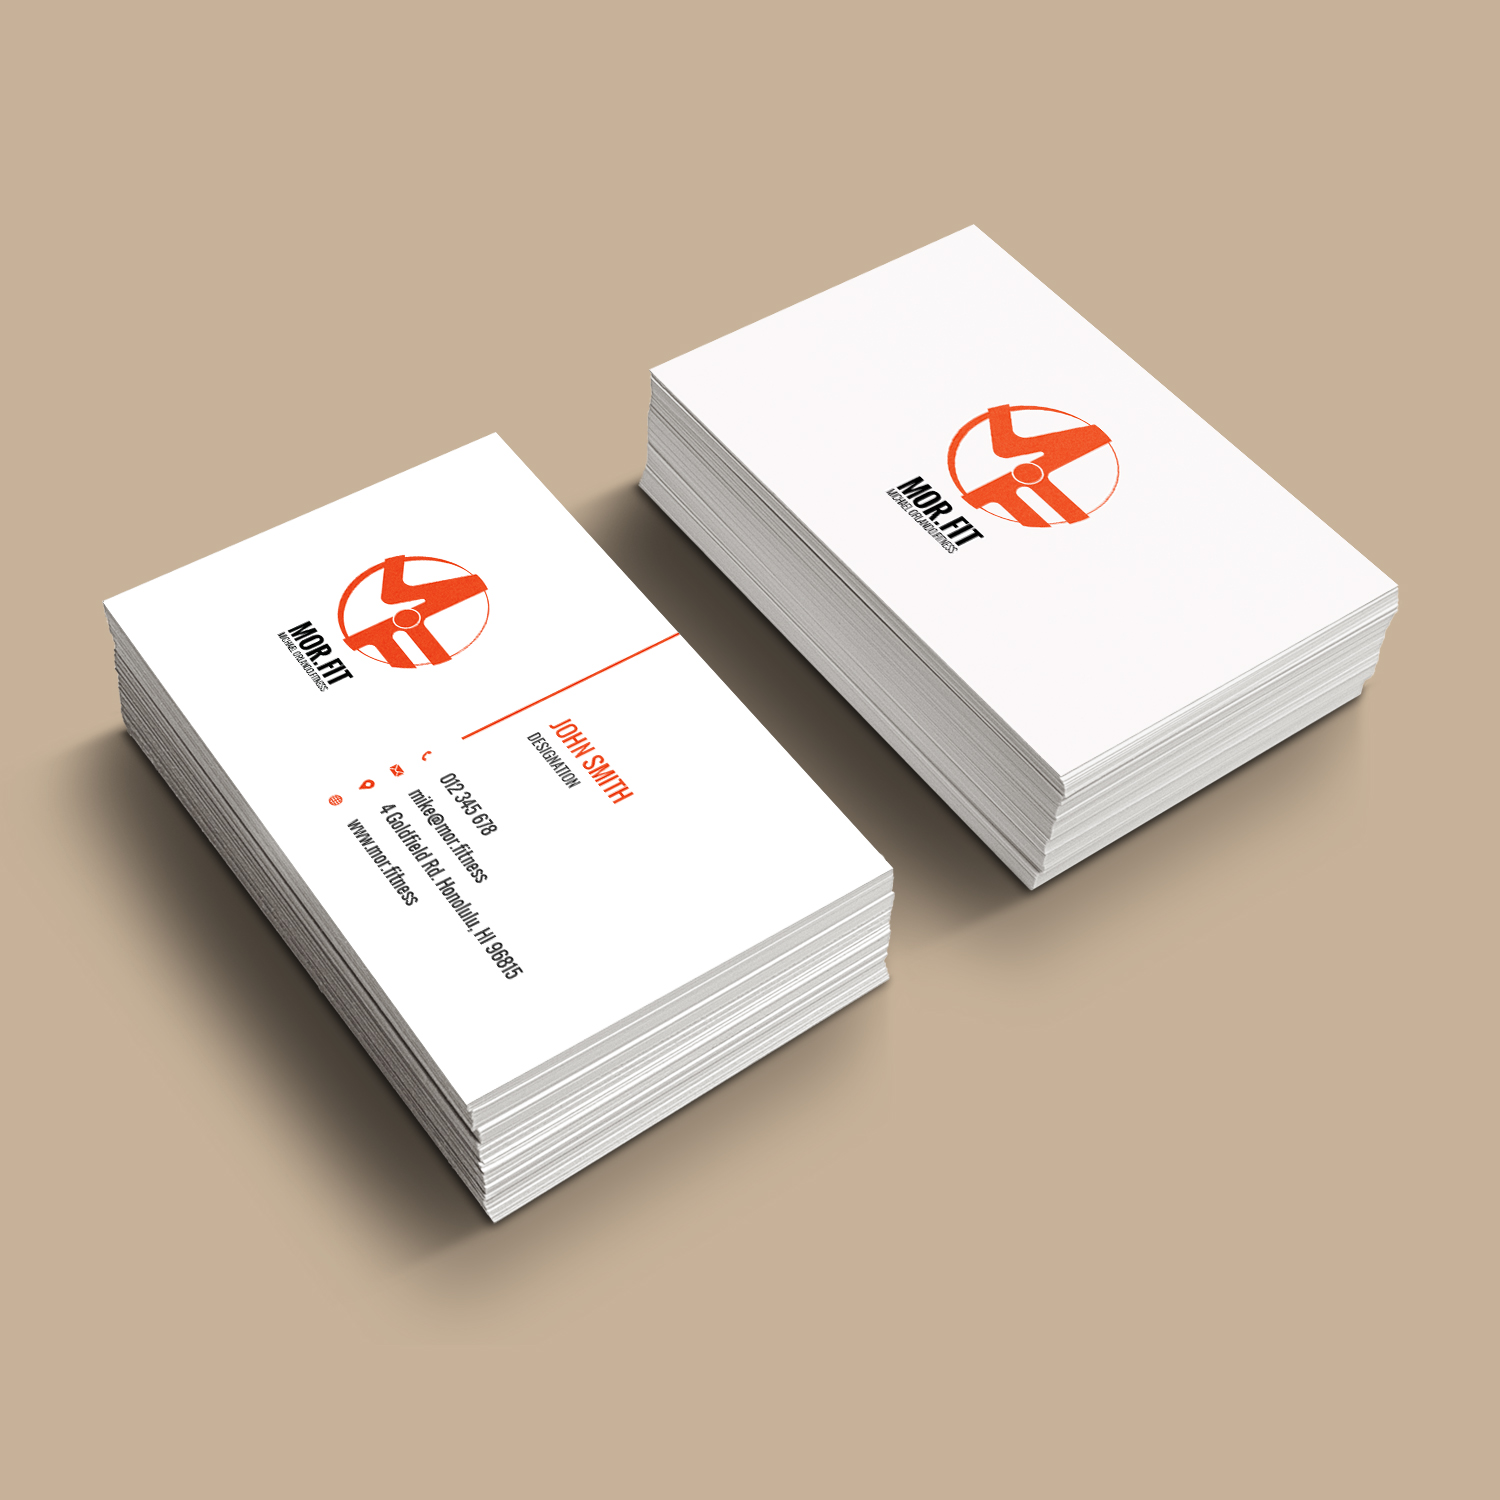 Professional modern personal trainer business card design for business card design by bdesigner9 for michael orlando fitness design 16768847 reheart Image collections